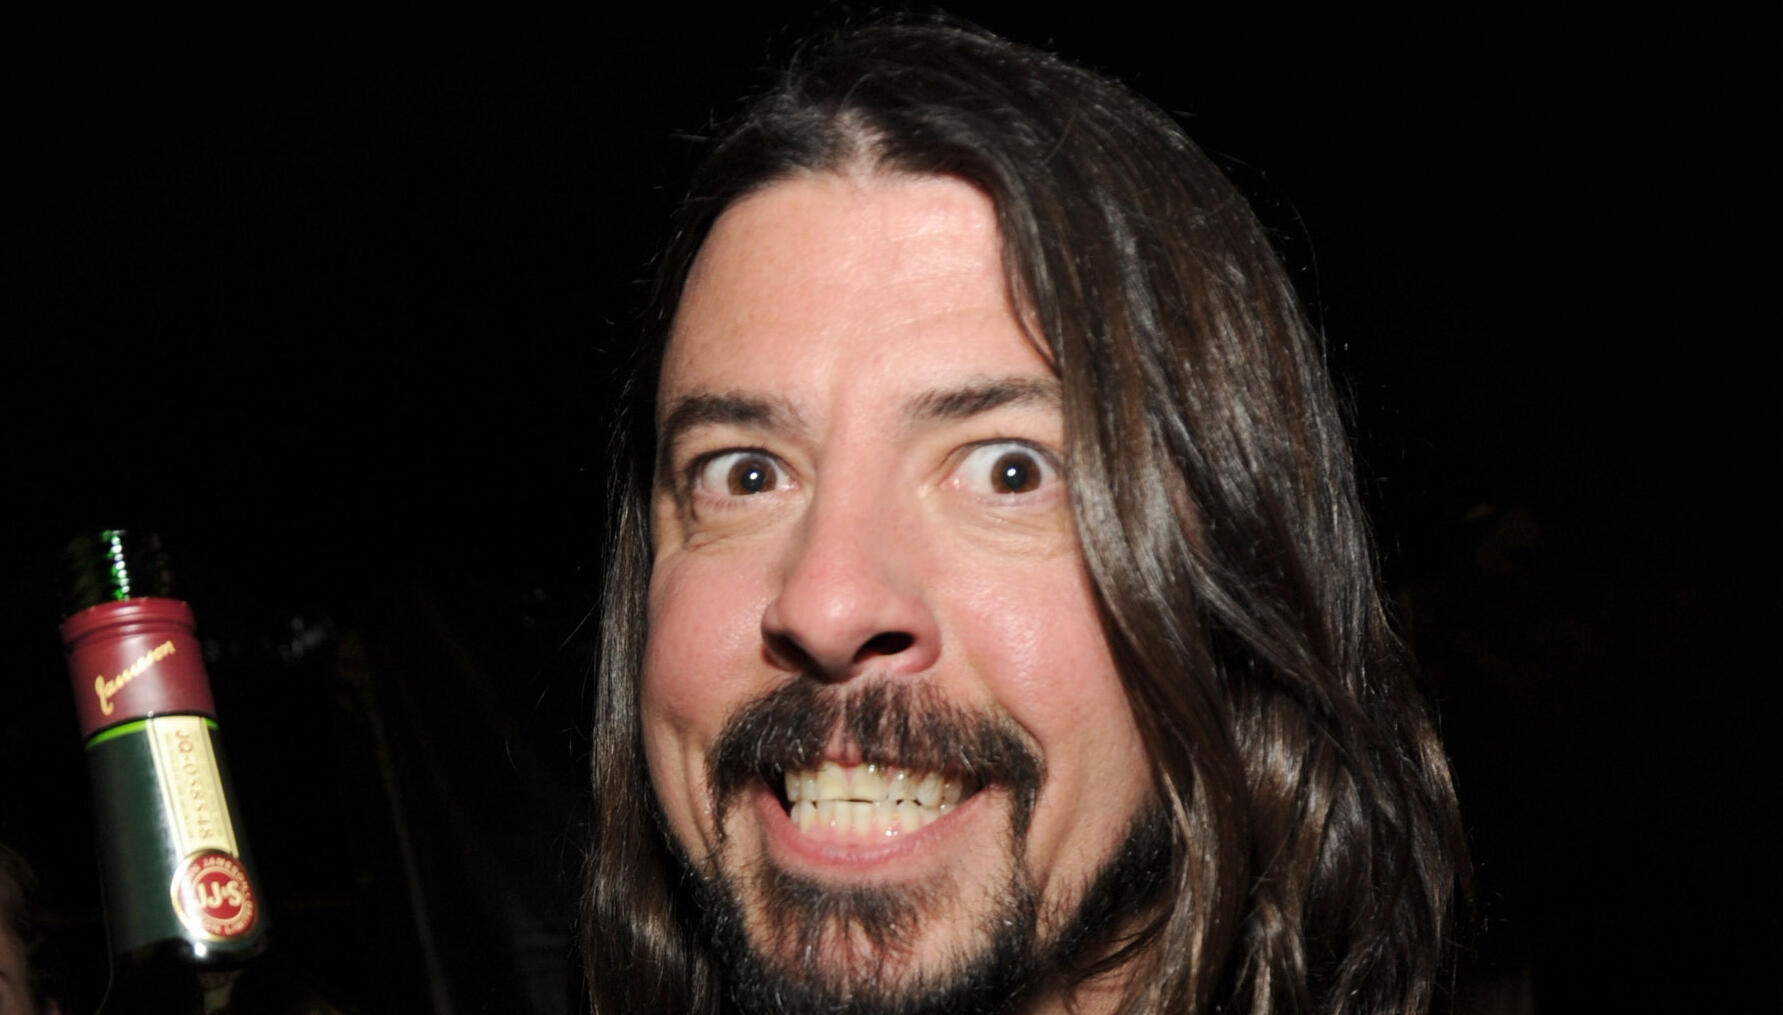 Dave Grohl's Pre-Show Routine Has Fans Concerned About His Drinking